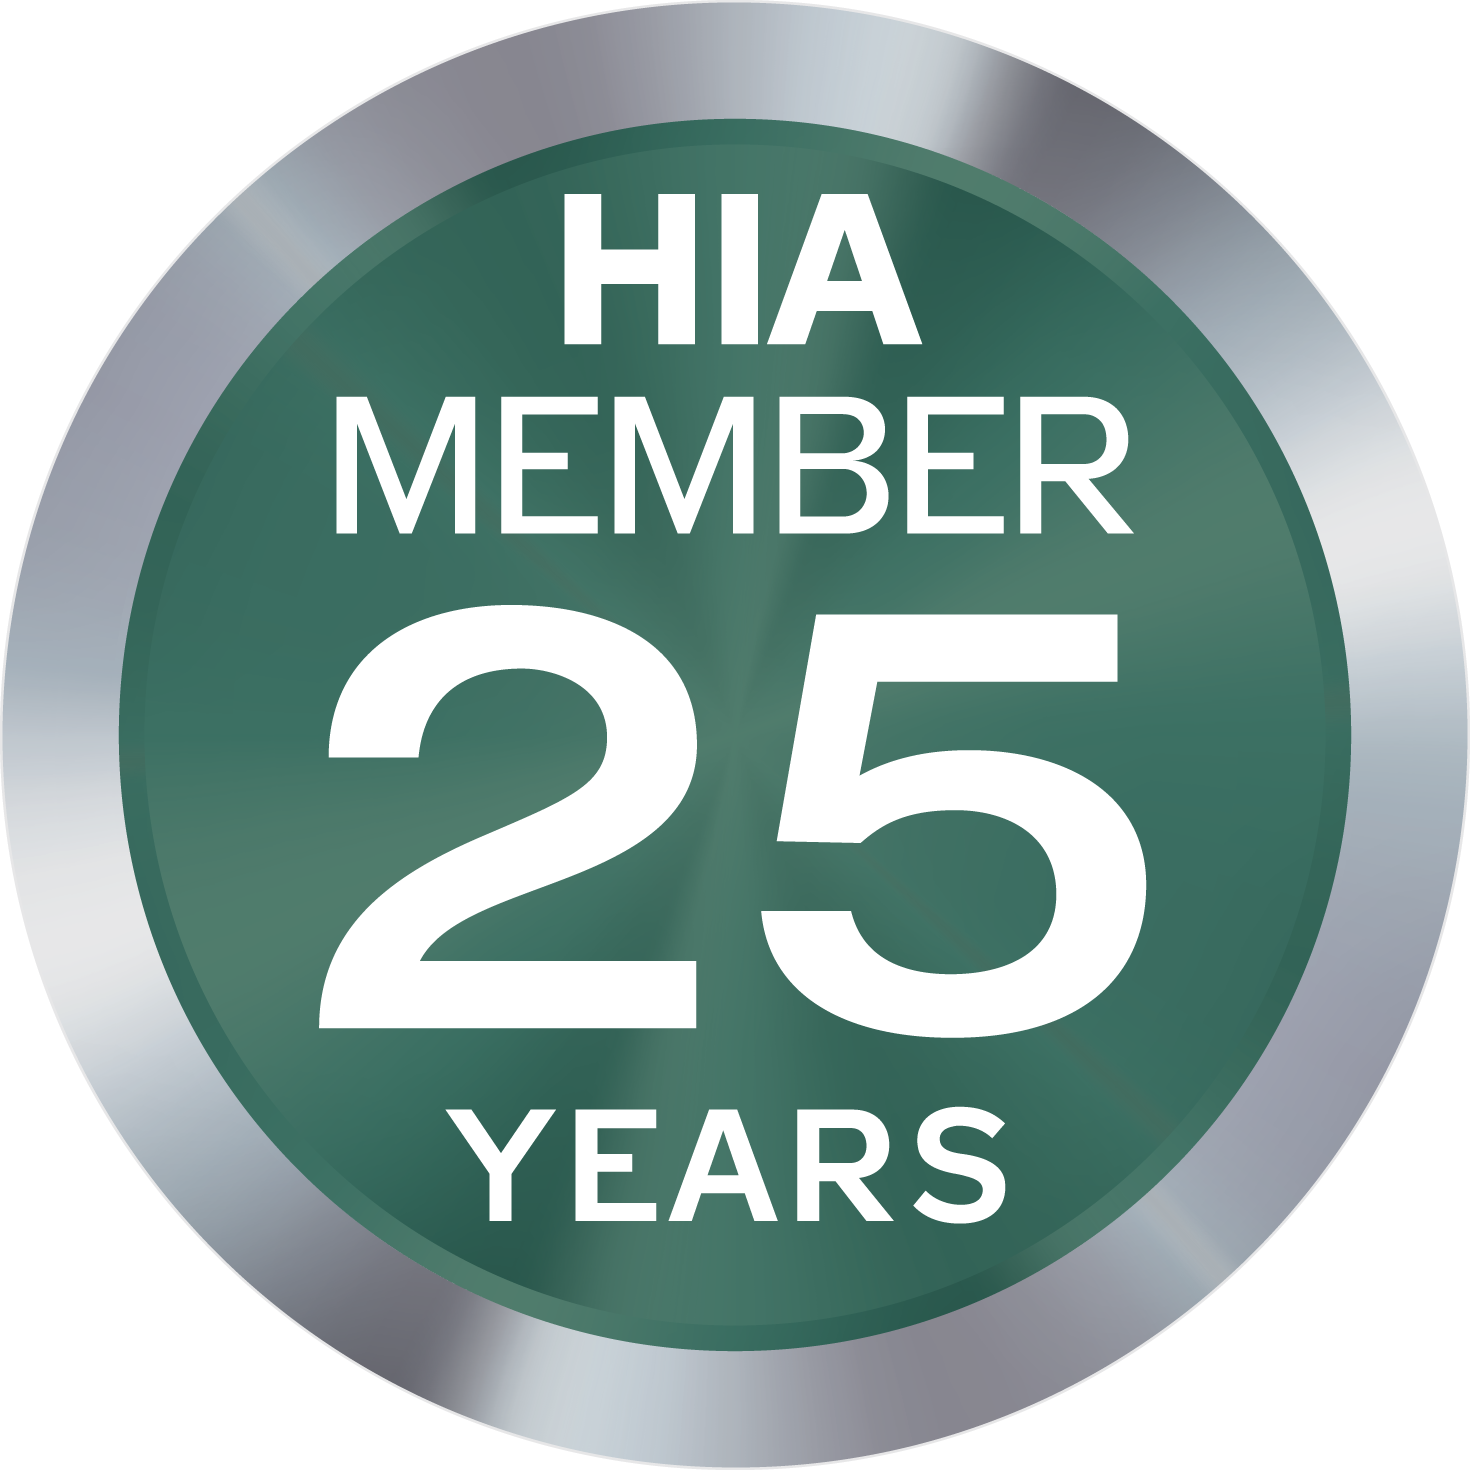 HIA Member Logo 25 years - green circle with silver border and large number 25 in the middle with words HIA Member above and Years below the 25